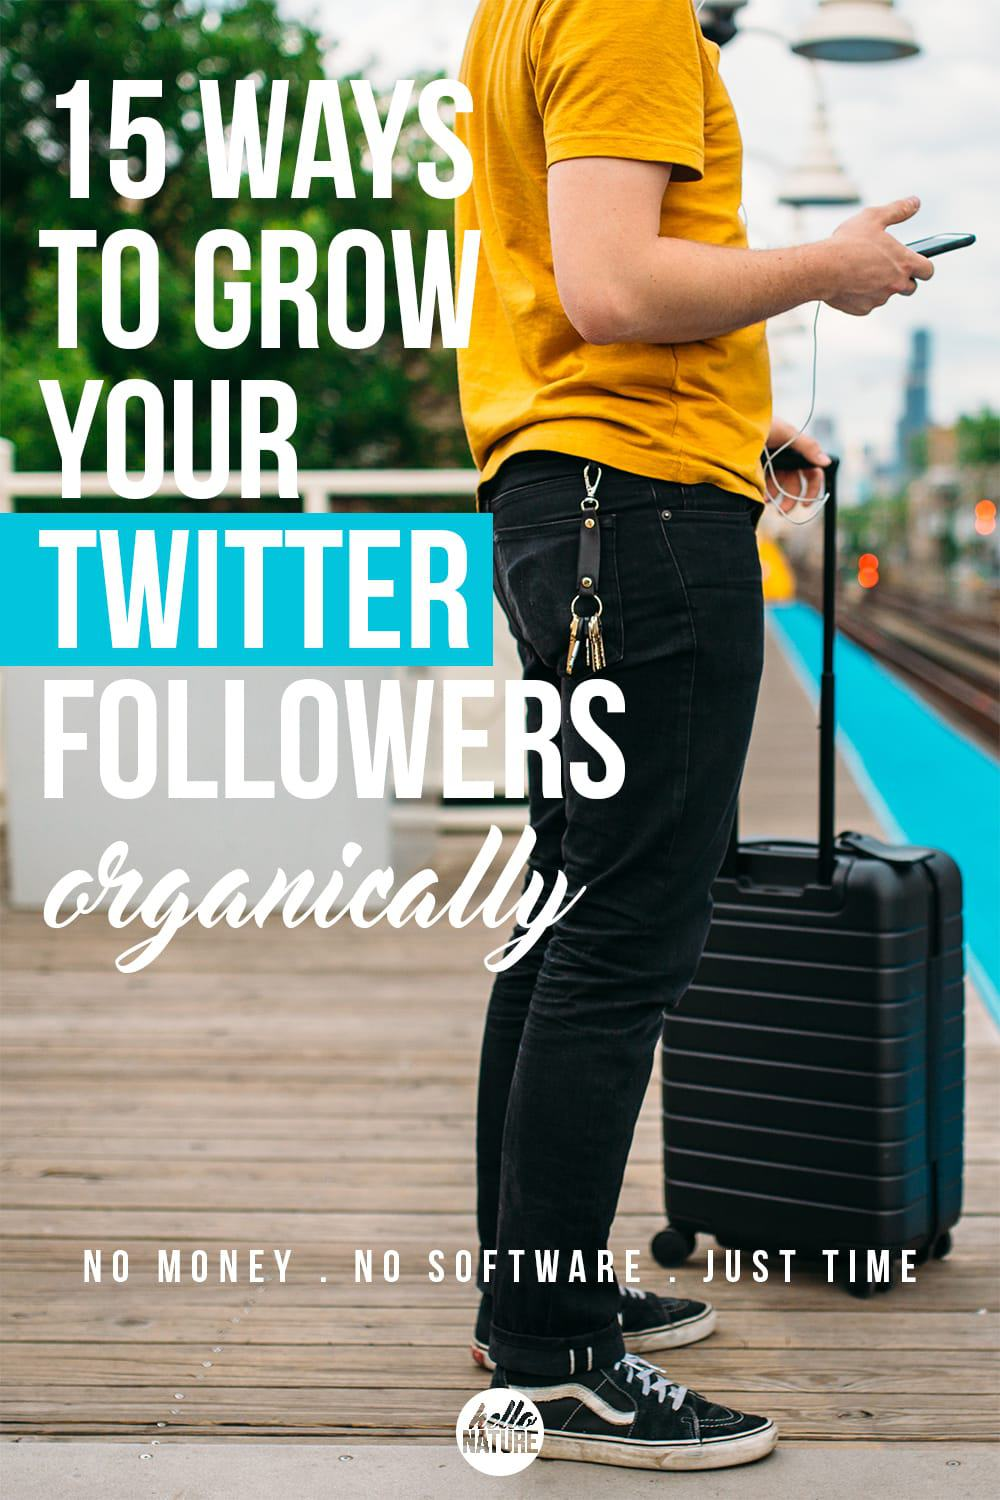 These fifteen ways to grow your Twitter followers organically will help your social media statistics soar without any money. All you need is time!